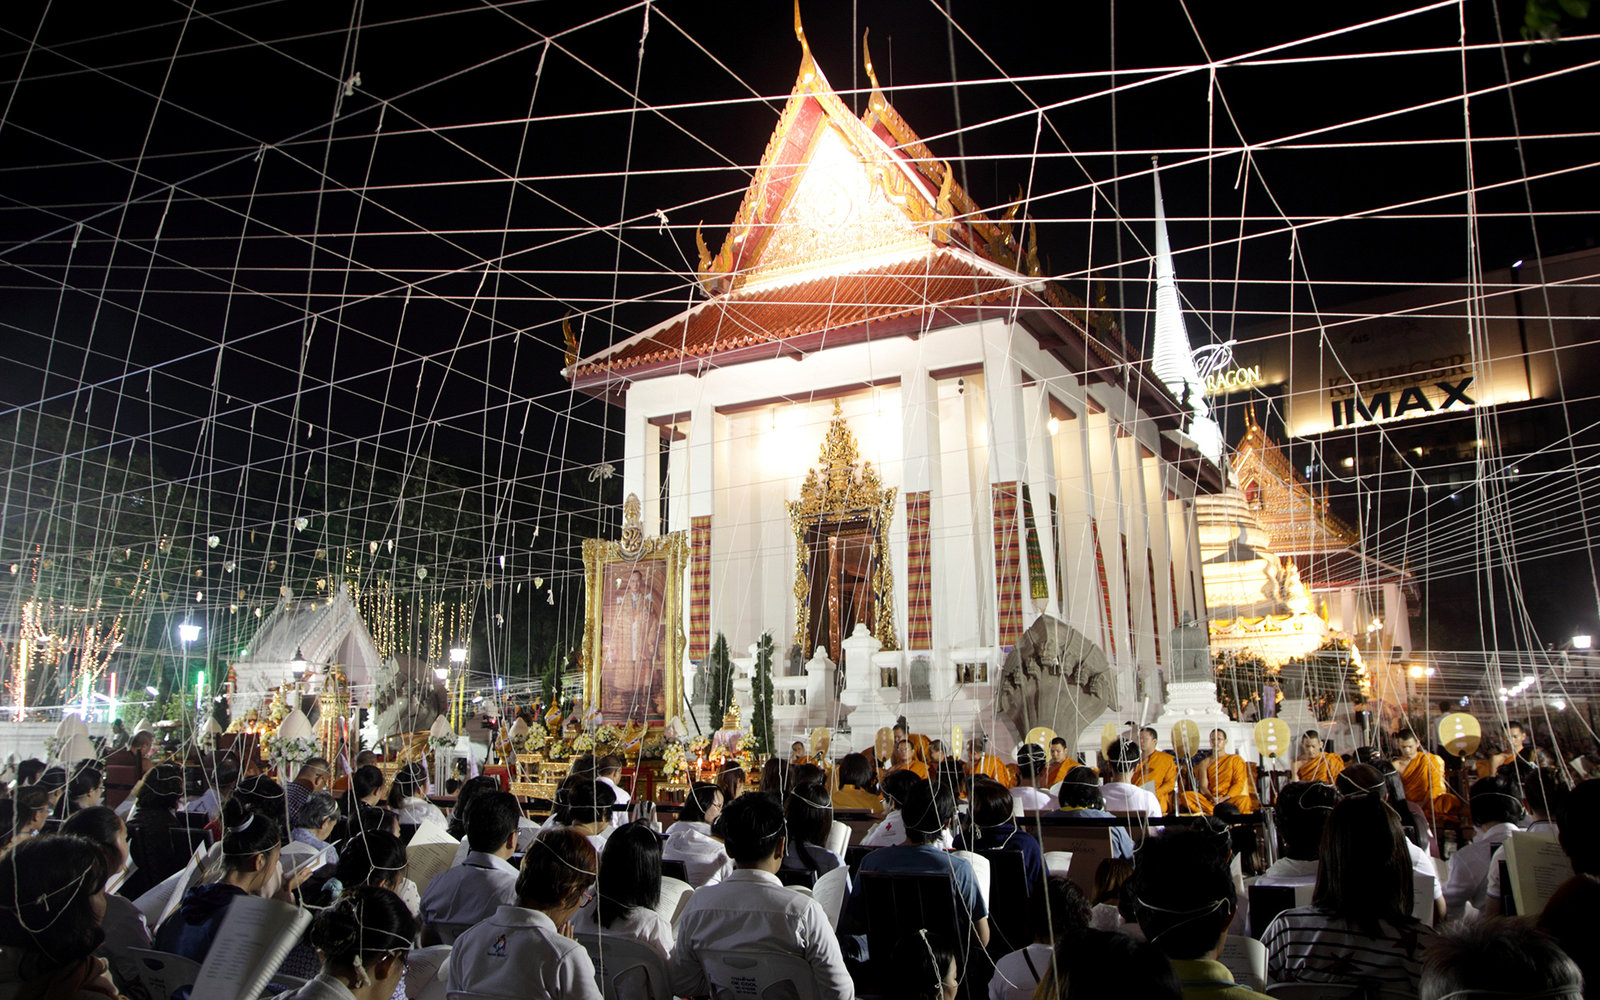 BANGKOK, THAILAND - 2014/12/31: People chanting and offering prayers with Buddhist monks during the New Year's Eve 2015 countdown at Pathum Wanaram Temple in Bangkok. (Photo by Piti A Sahakorn/LightRocket via Getty Images)